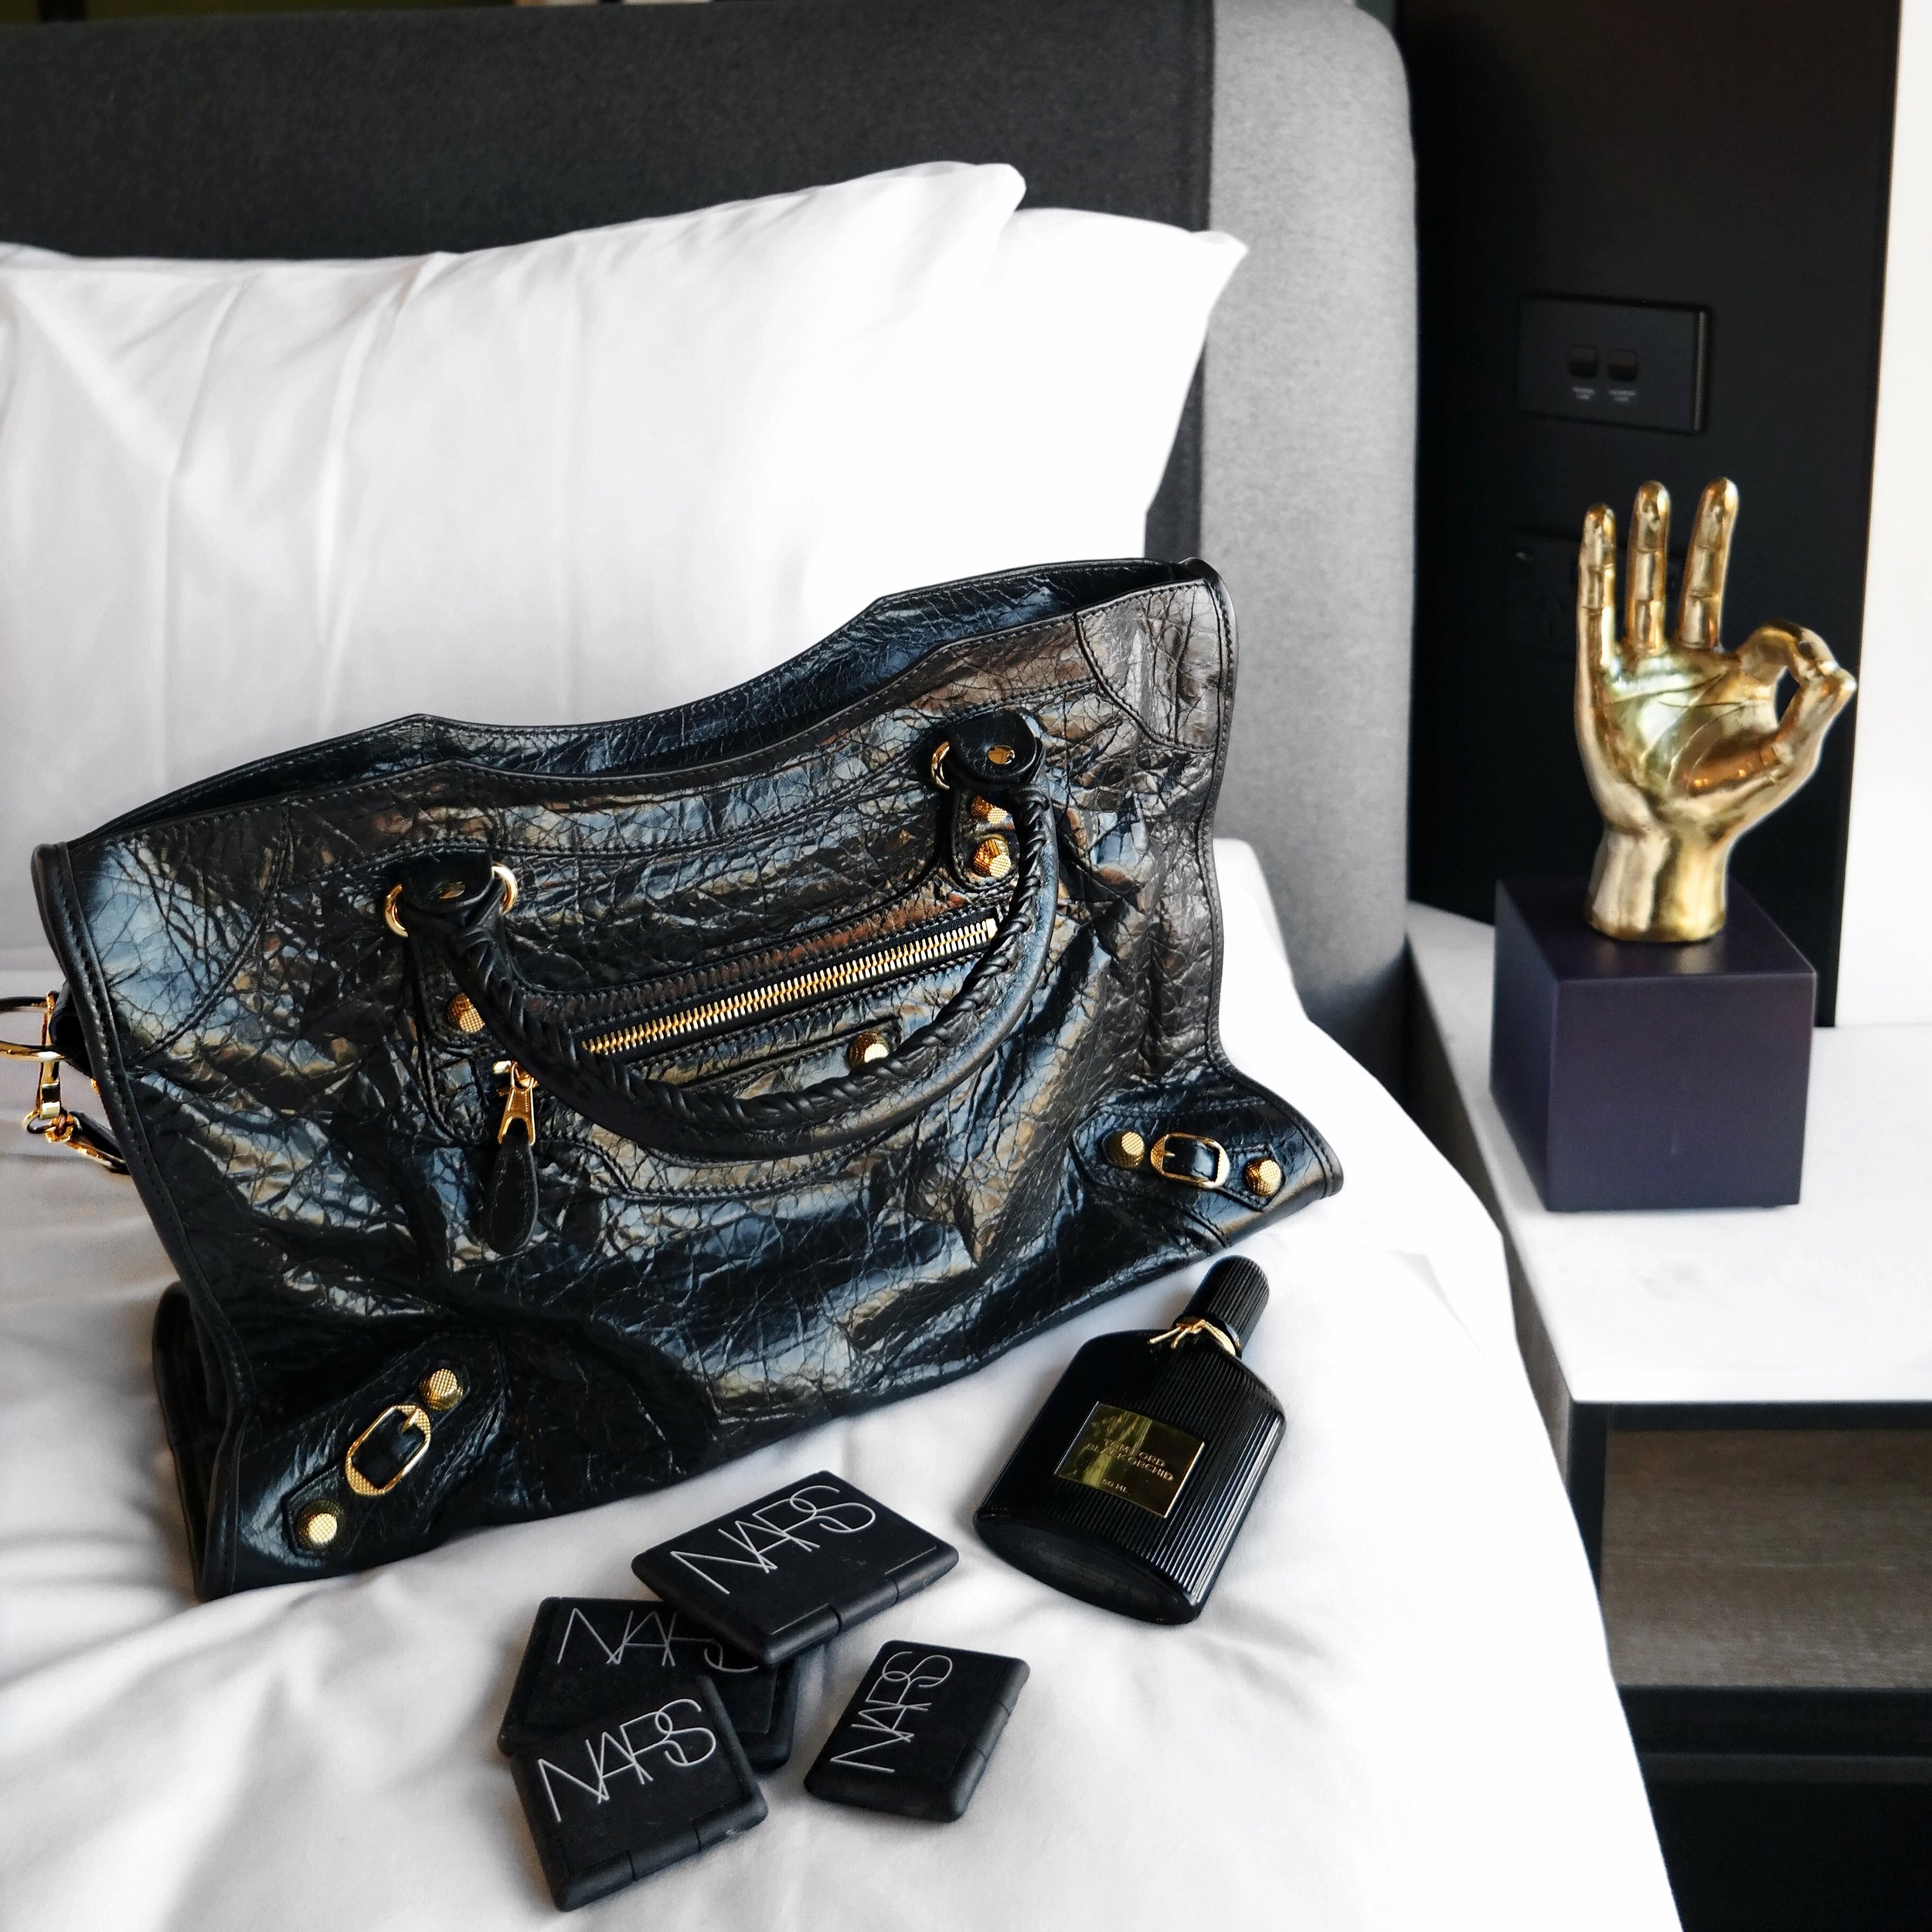 Balenciaga Motorcycle Bag Cosette at Tribe Hotels West Perth | Izzy Wears Blog